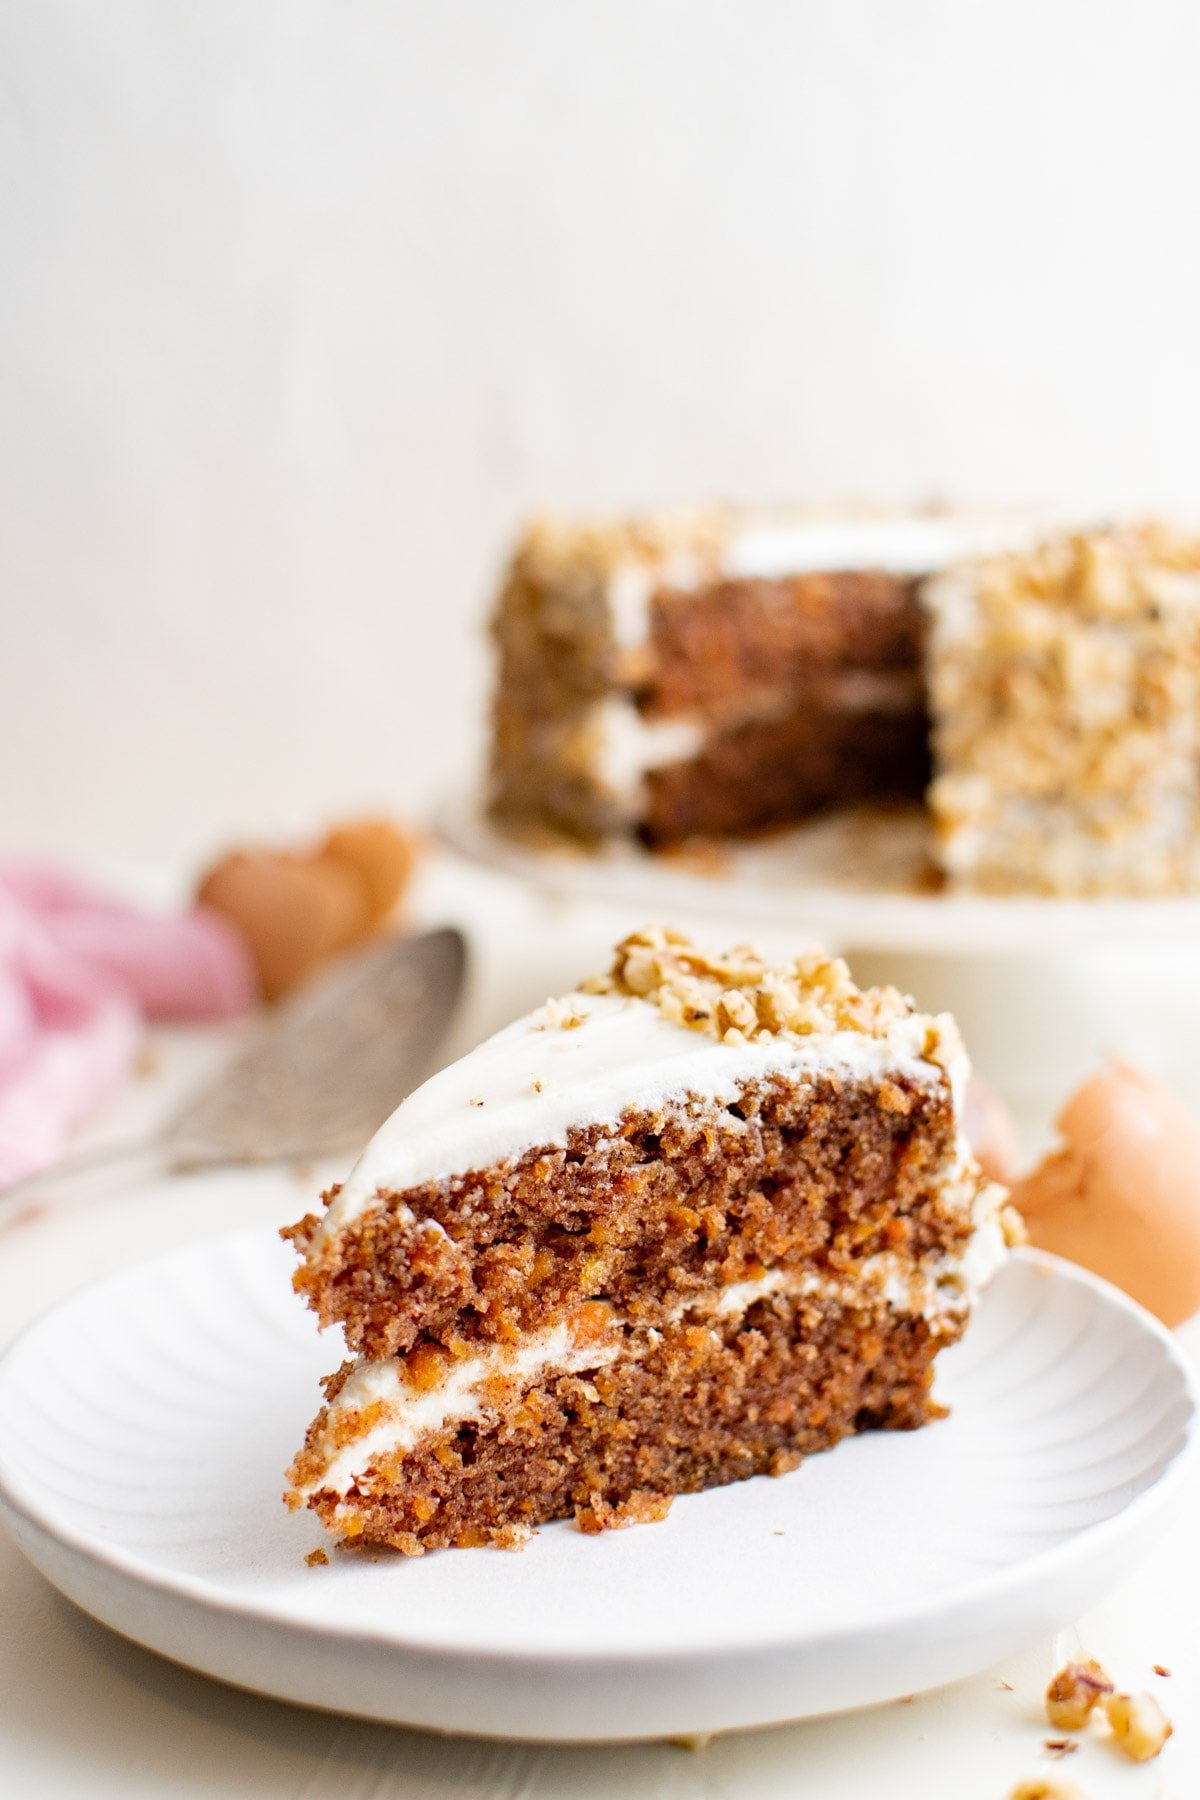 slice of carrot cake on a white plate, whole cake in the background